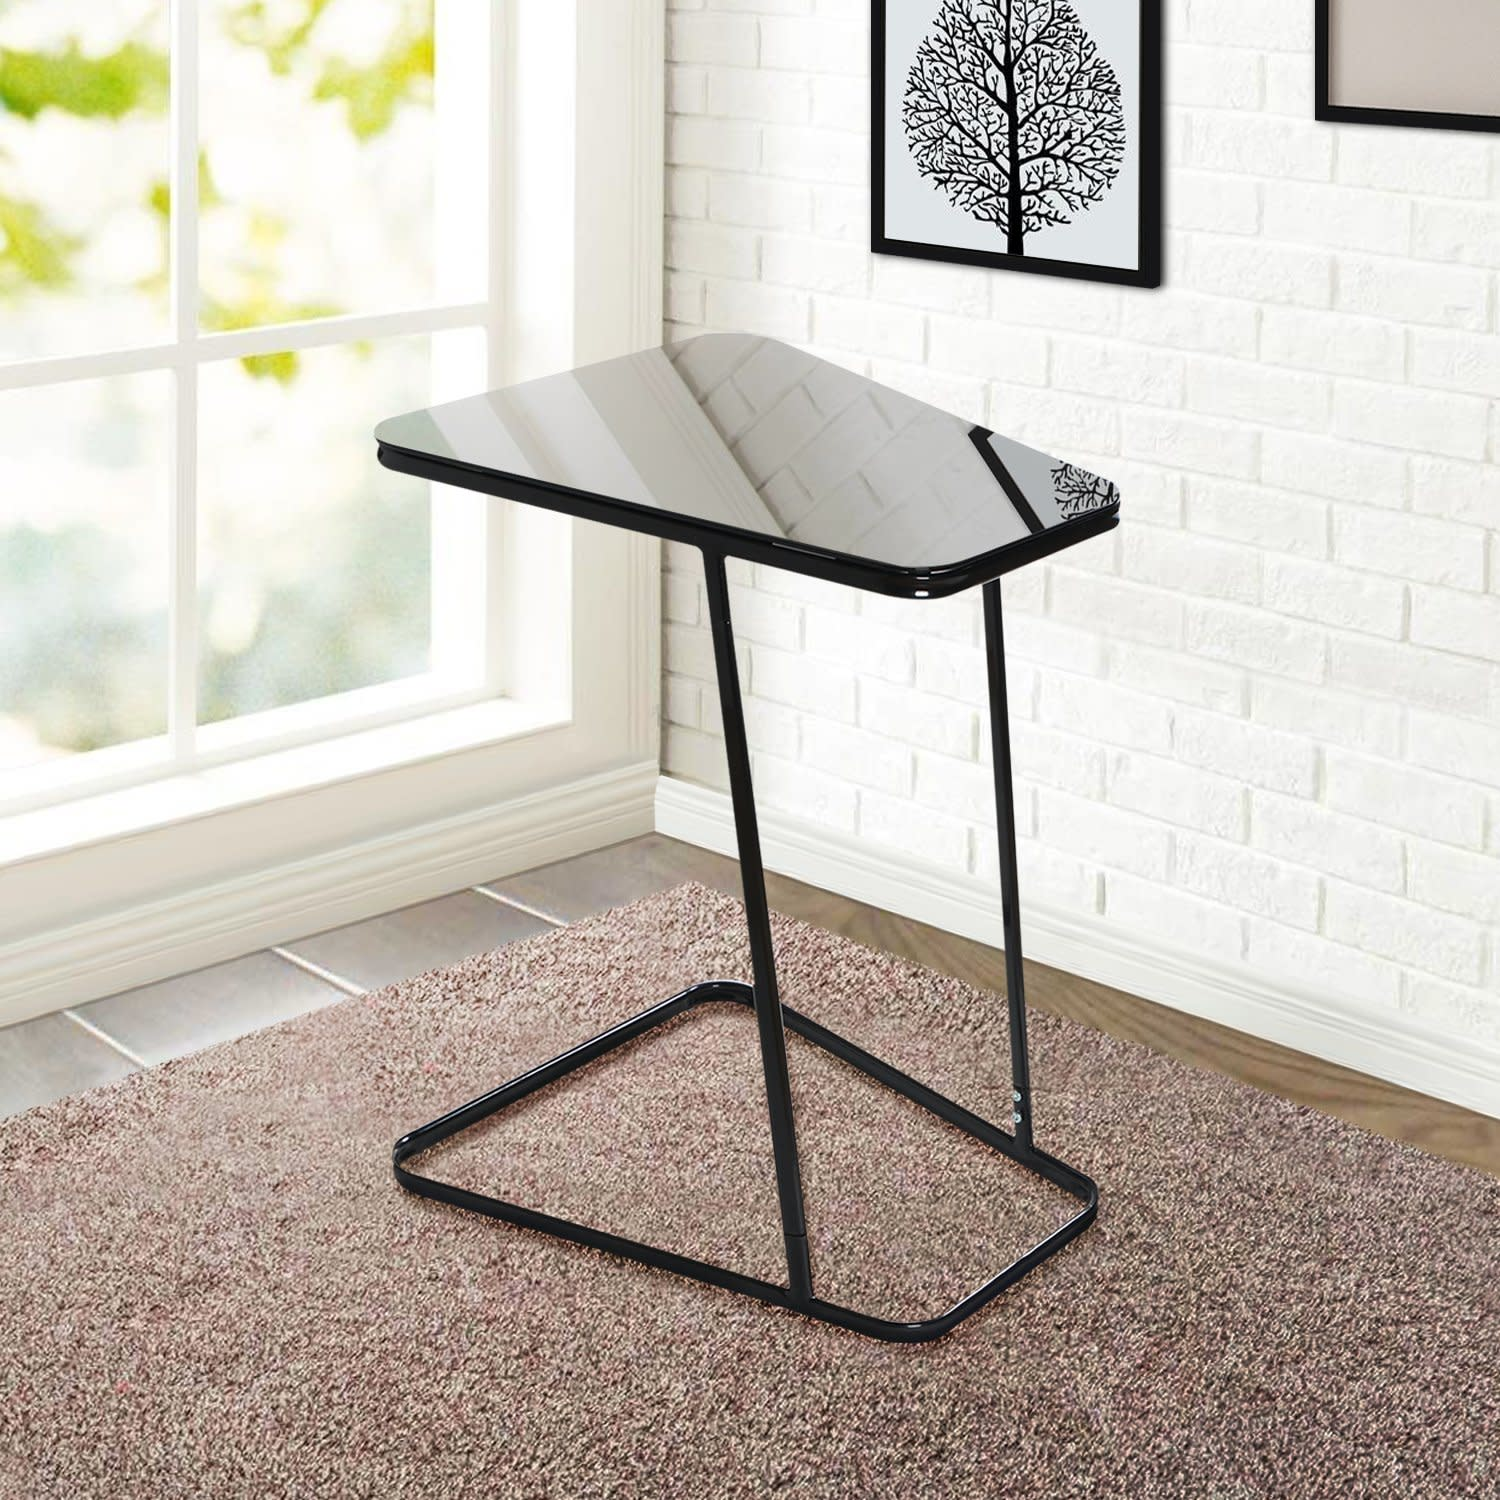 End Table Side Snack Coffee Sofa Bed Chair Durable Tempered Glass Steel  Black RV